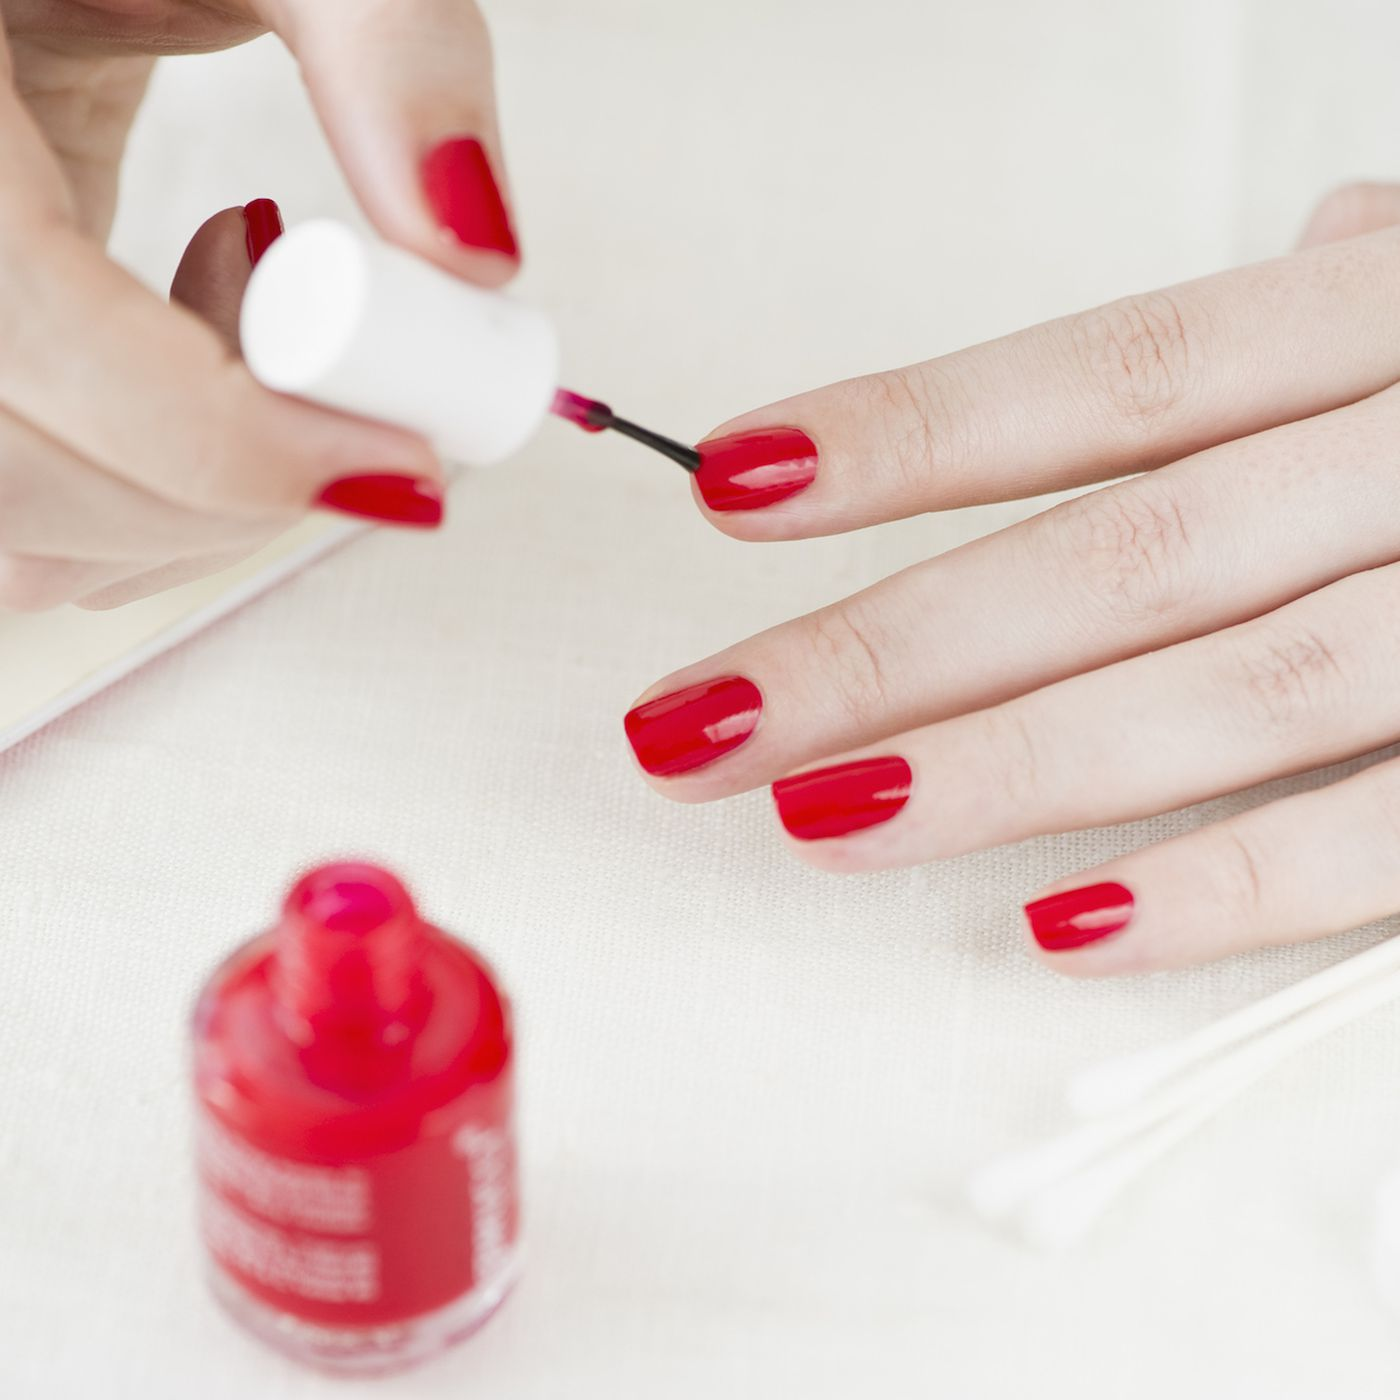 How to Master an At-Home Manicure - Racked